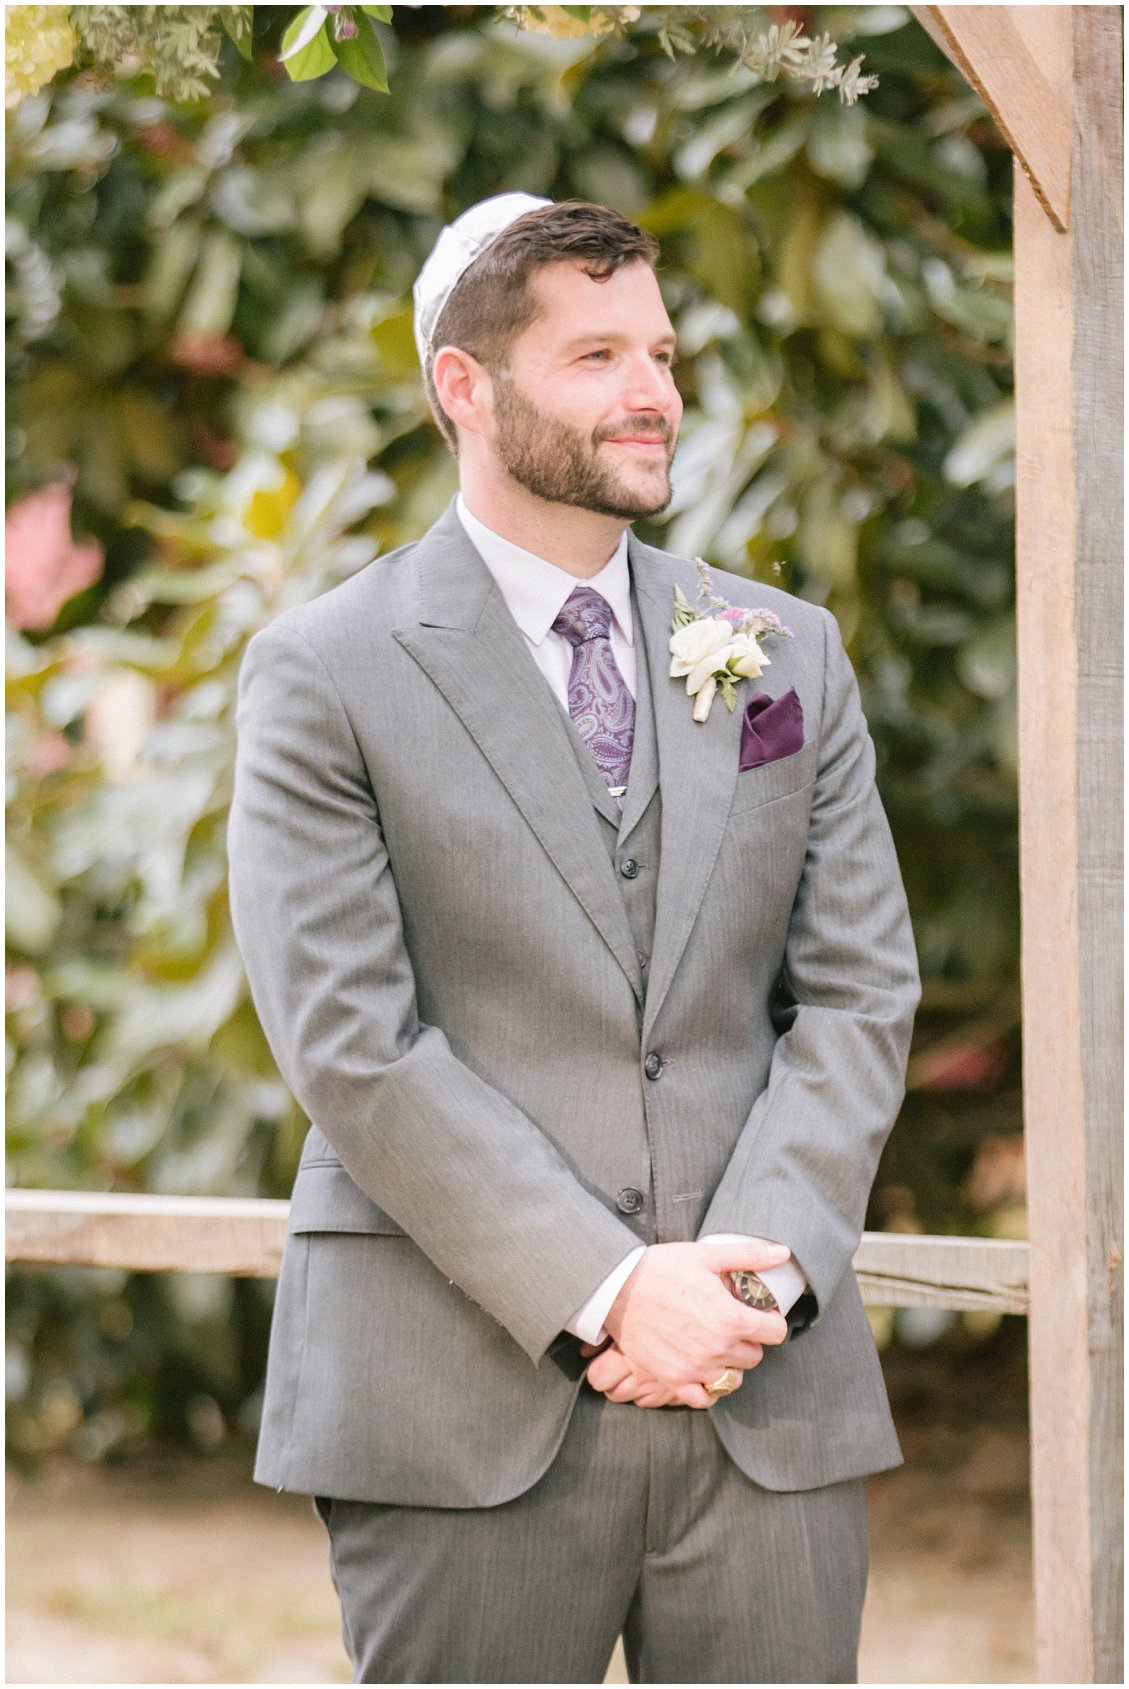 Elegant & intimate outdoor wedding at Seven Springs Farm & Manor Richmond VA captured by Tara & Stephen of Pattengale Photography